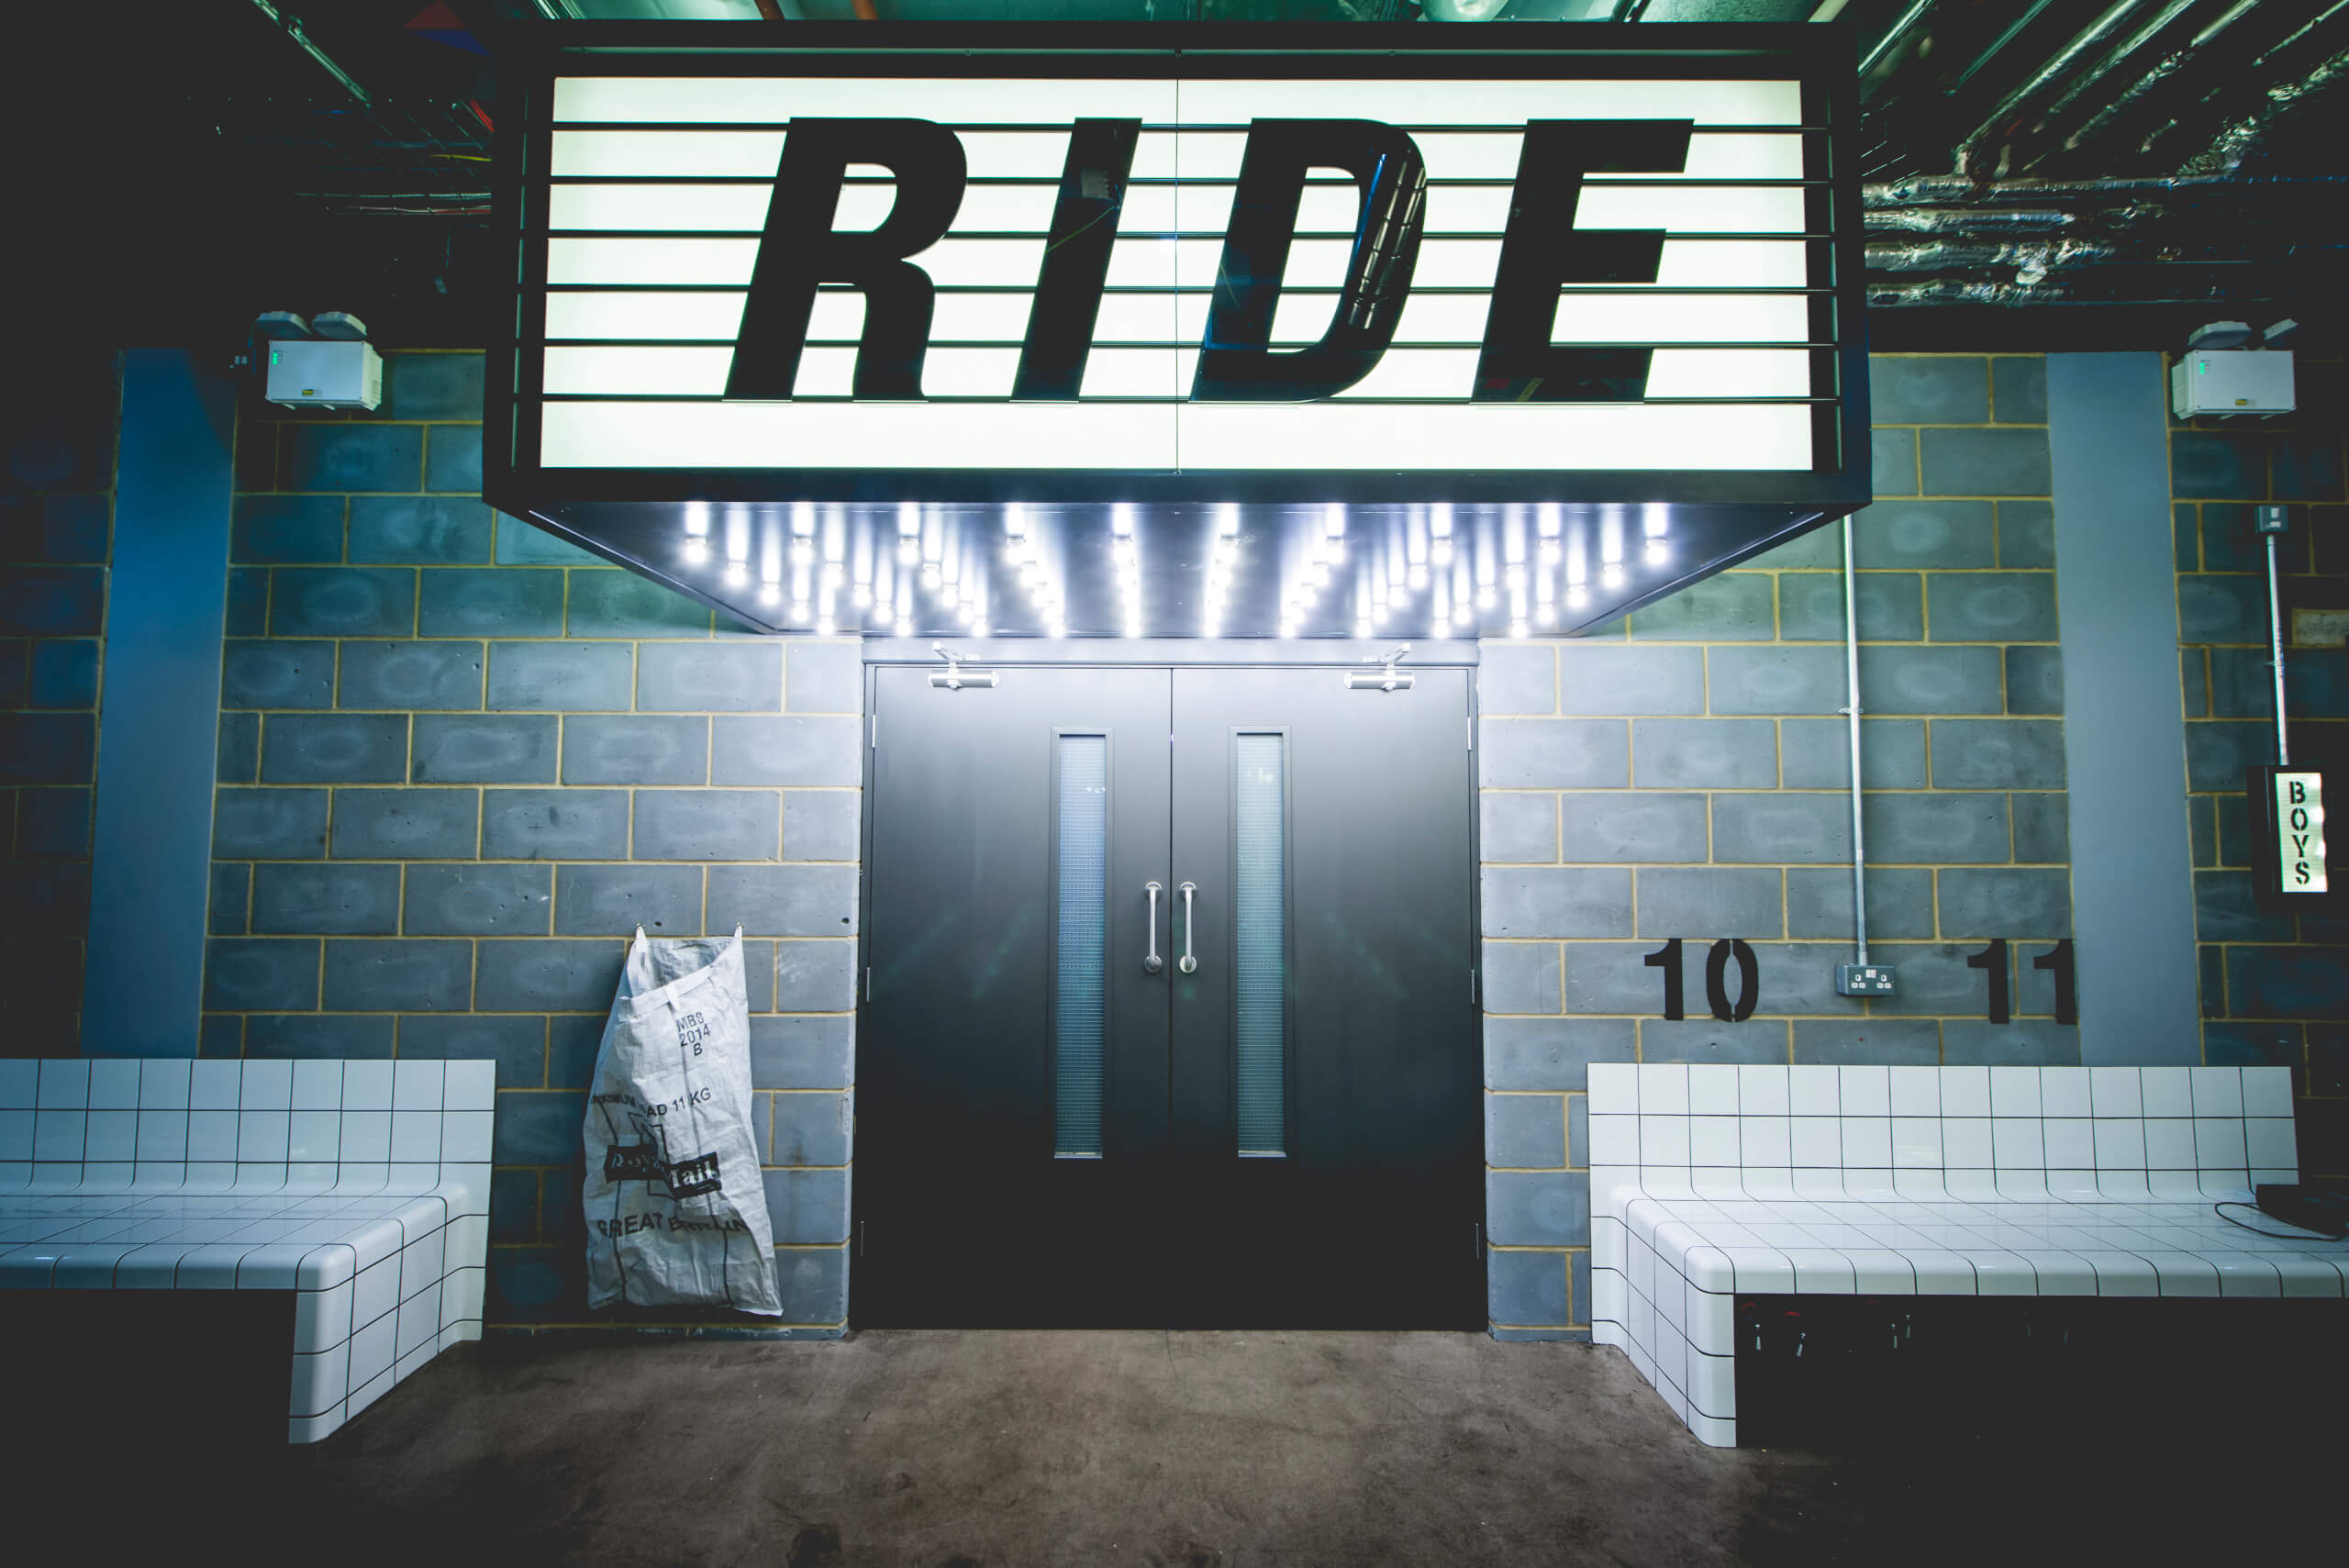 1R Ride studio sign